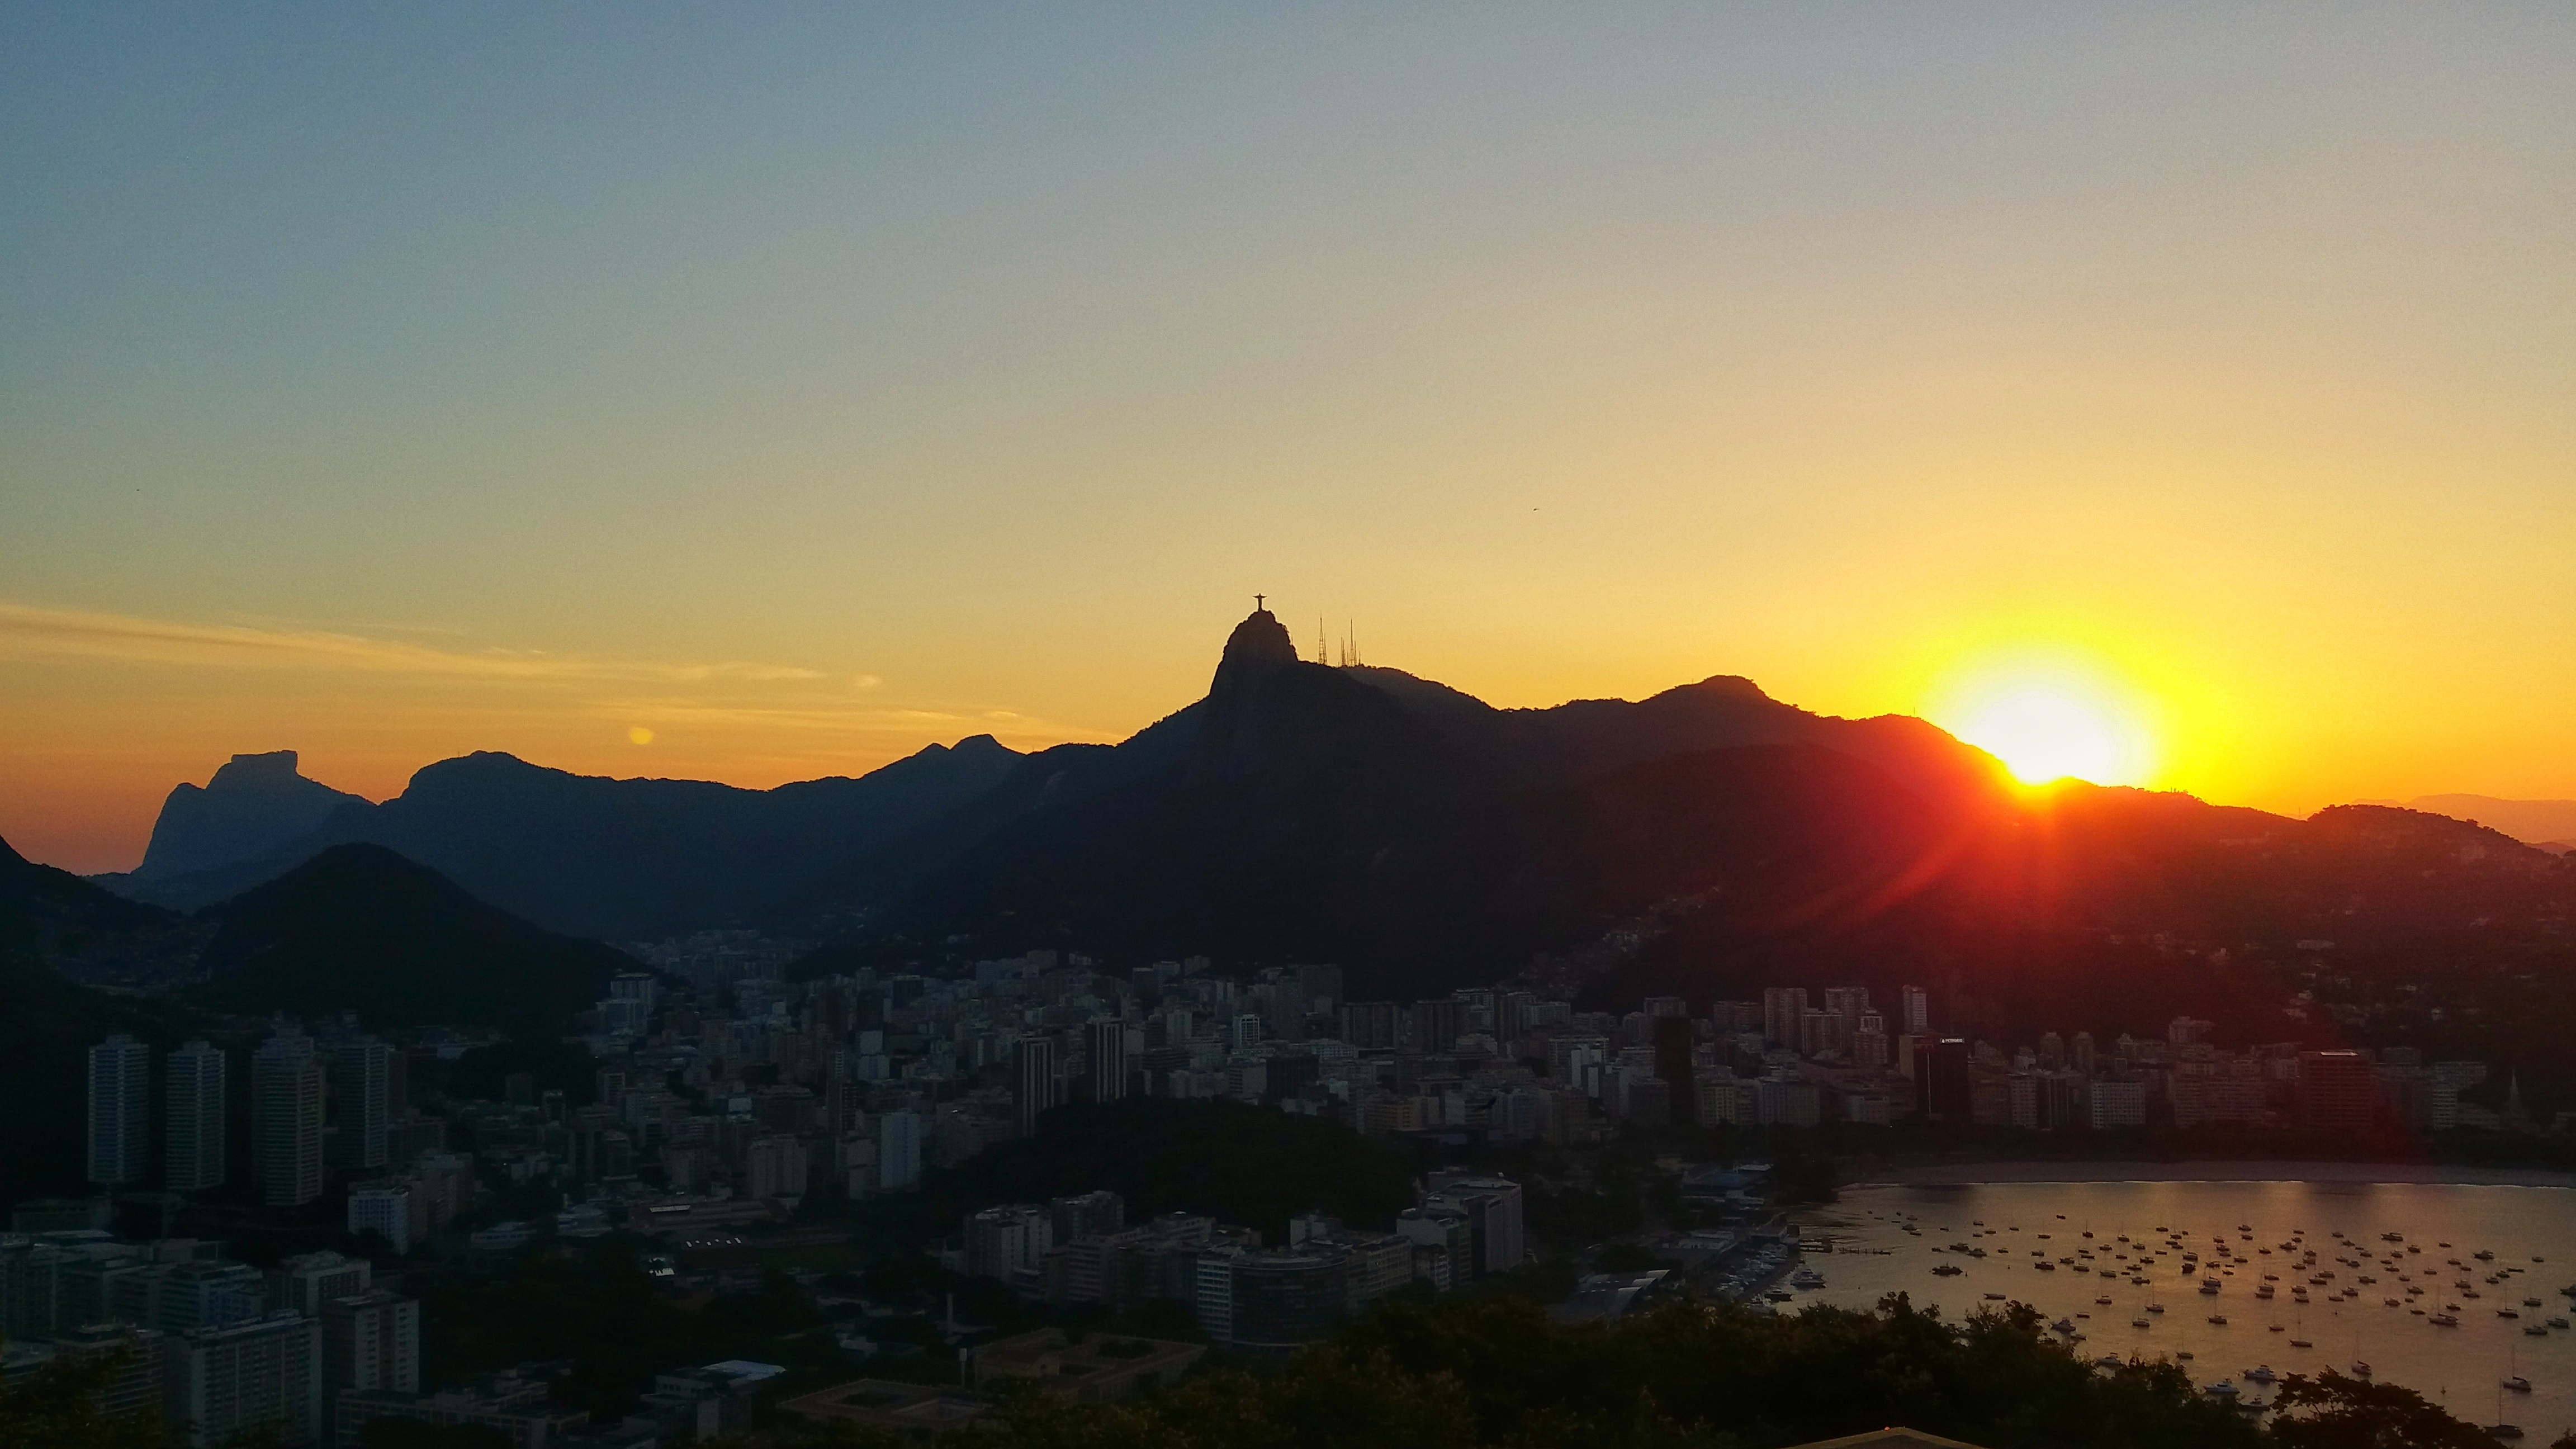 Sunset and Christ the Redeemer